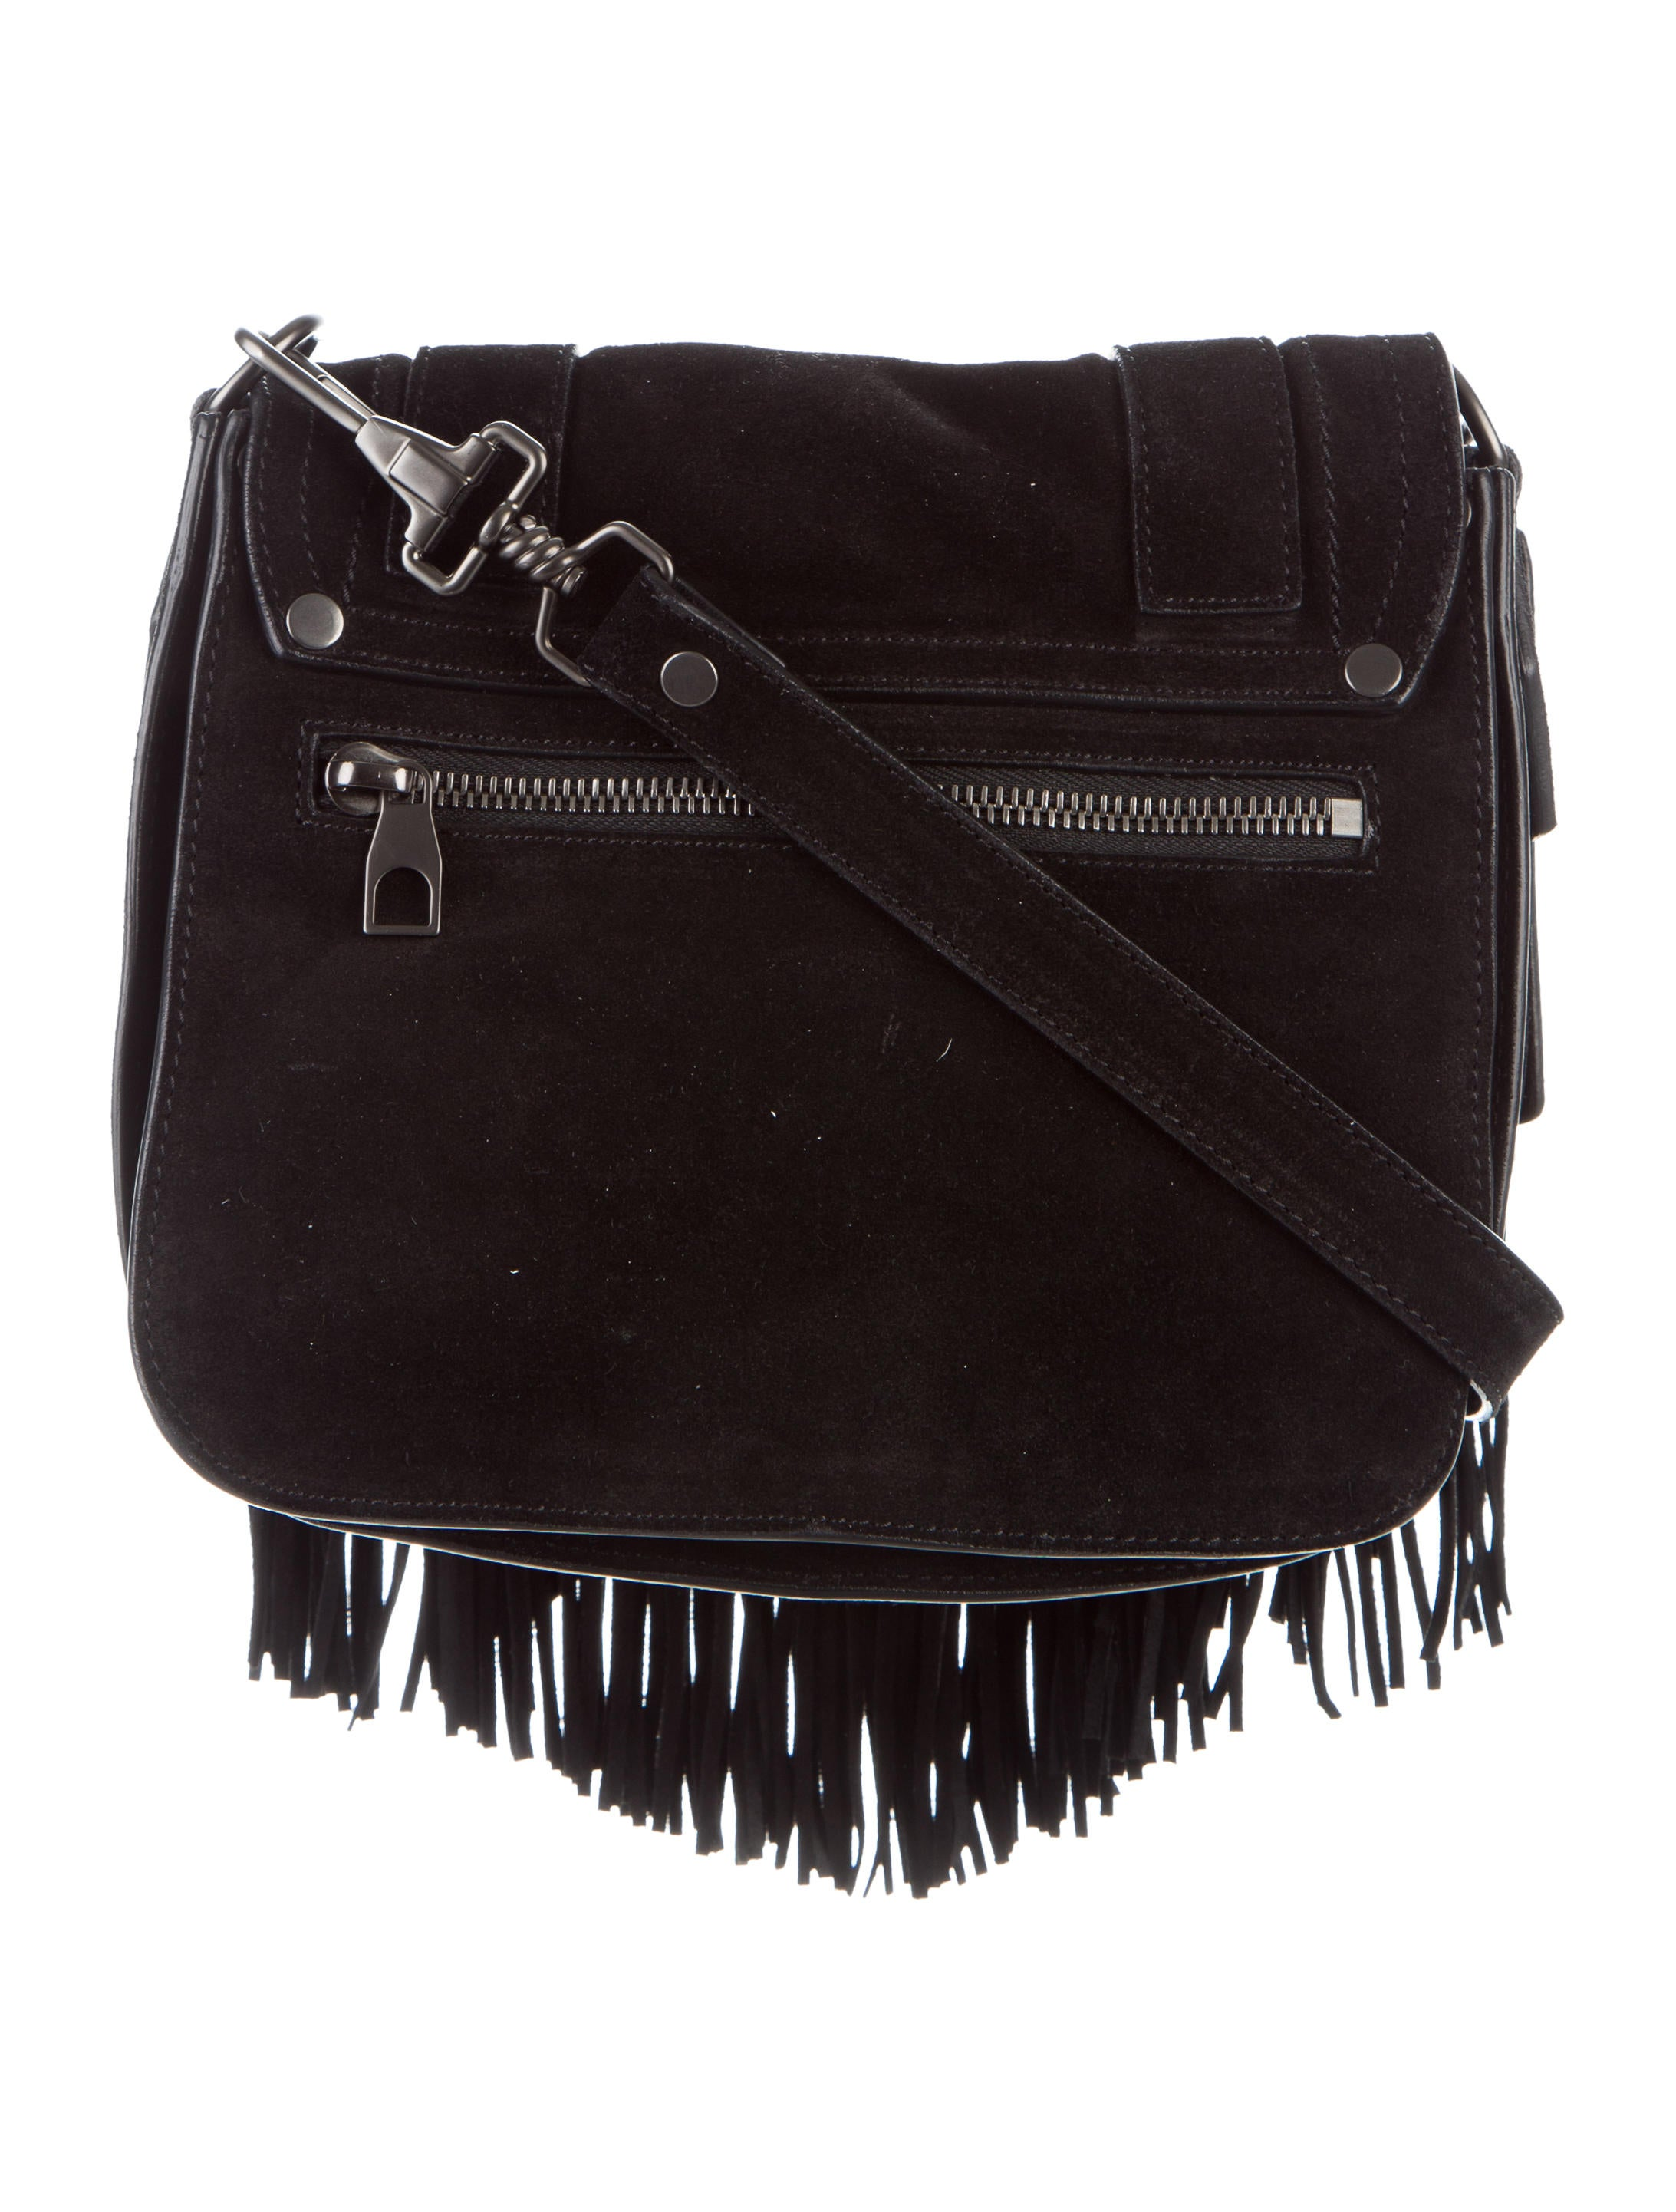 Proenza Schouler PS1 Suede Fringe Pouch Handbags  : PRO373404enlarged from www.therealreal.com size 2185 x 2883 jpeg 413kB